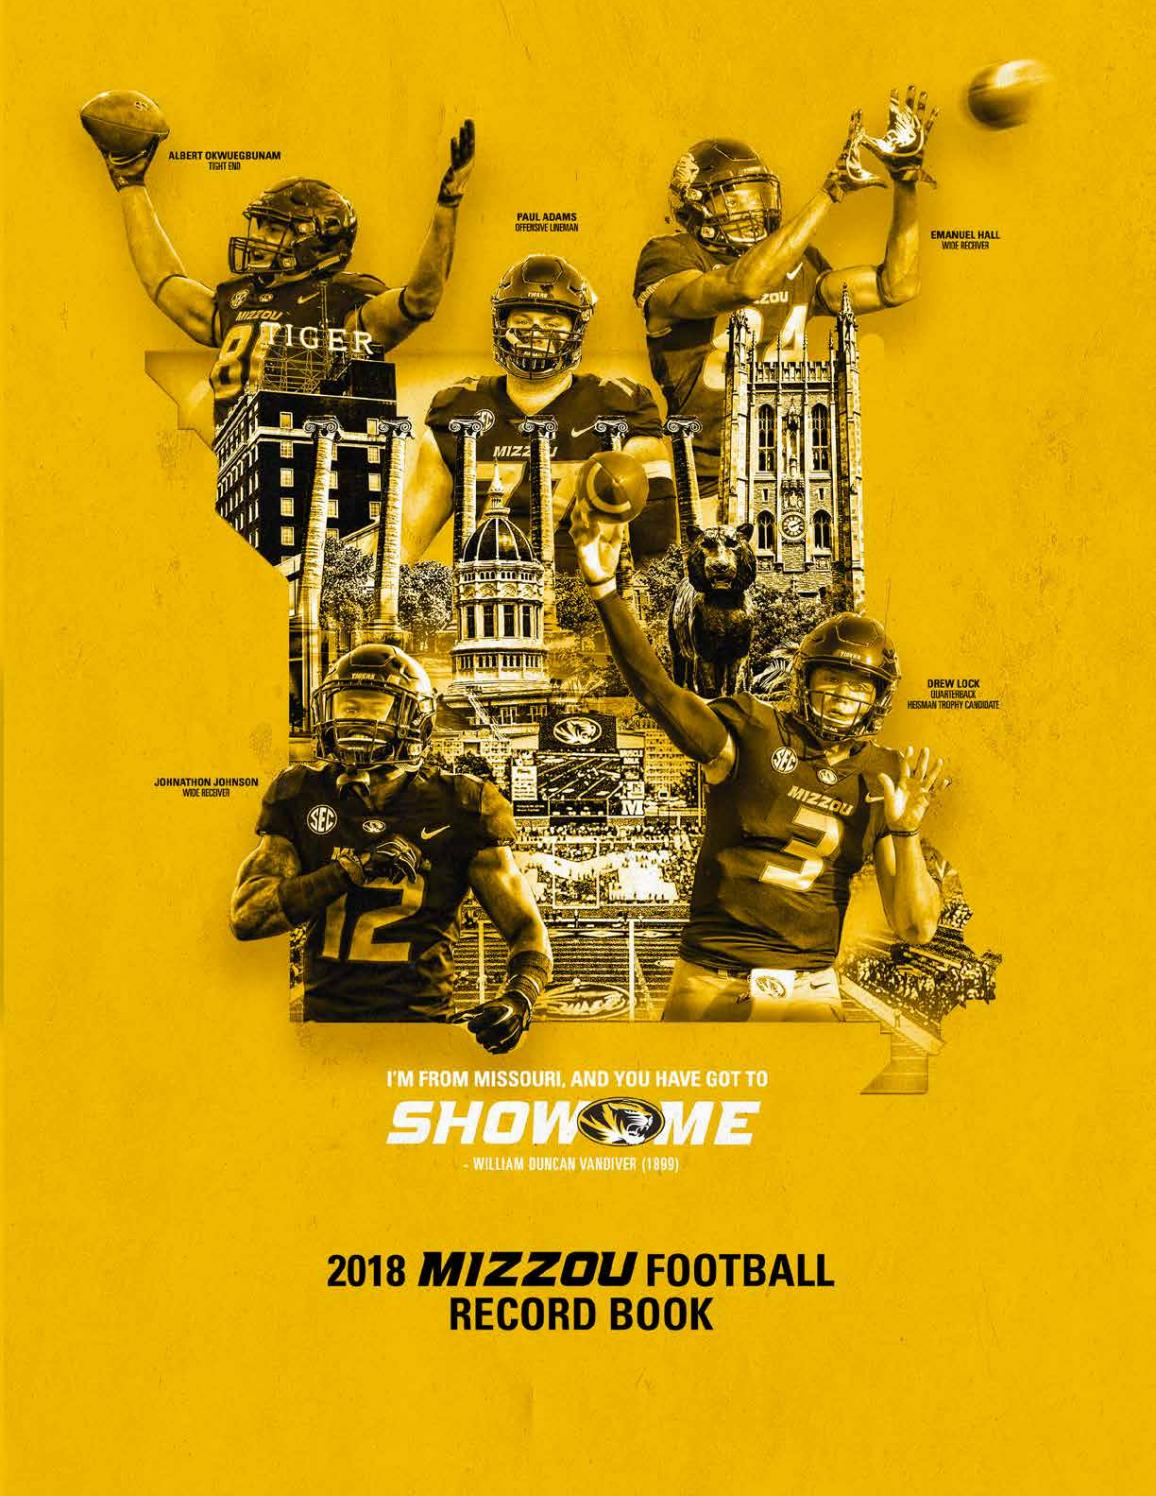 c57628b61 2018 missouri football media guide by Mexico Sports Collectibles - issuu